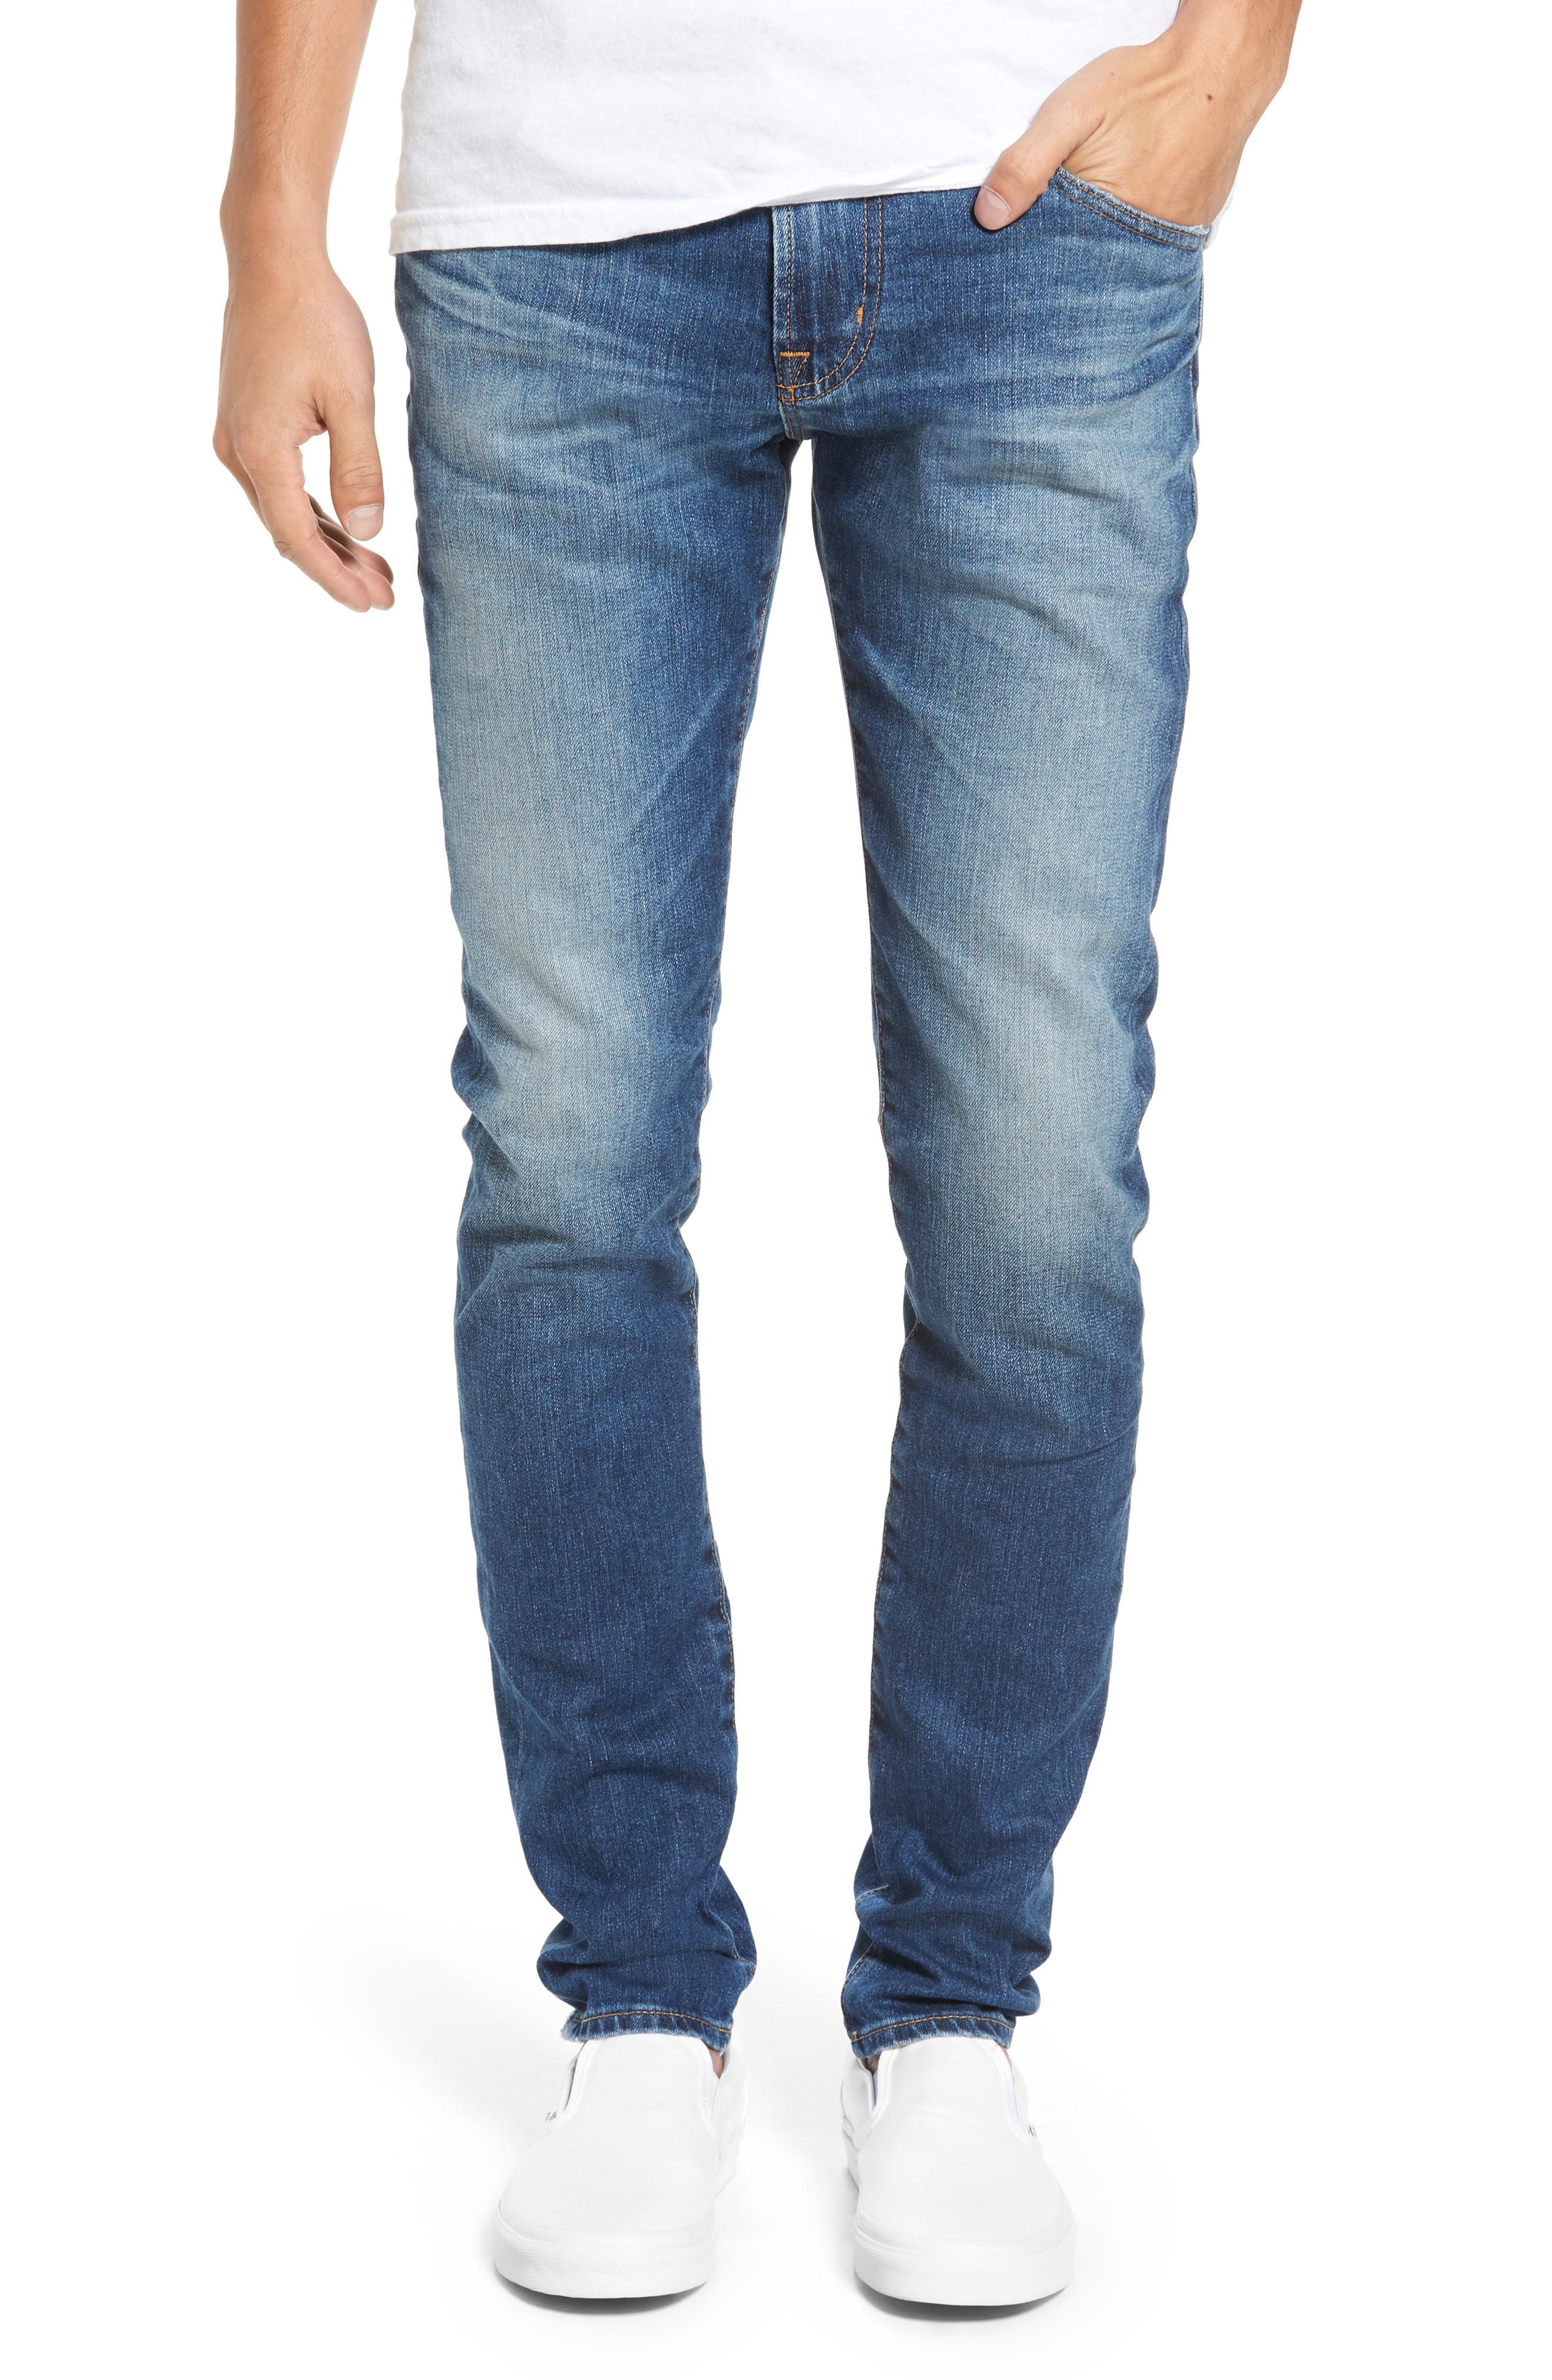 Jeans Stockton Skinny Fit Jeans, Main, color, 427